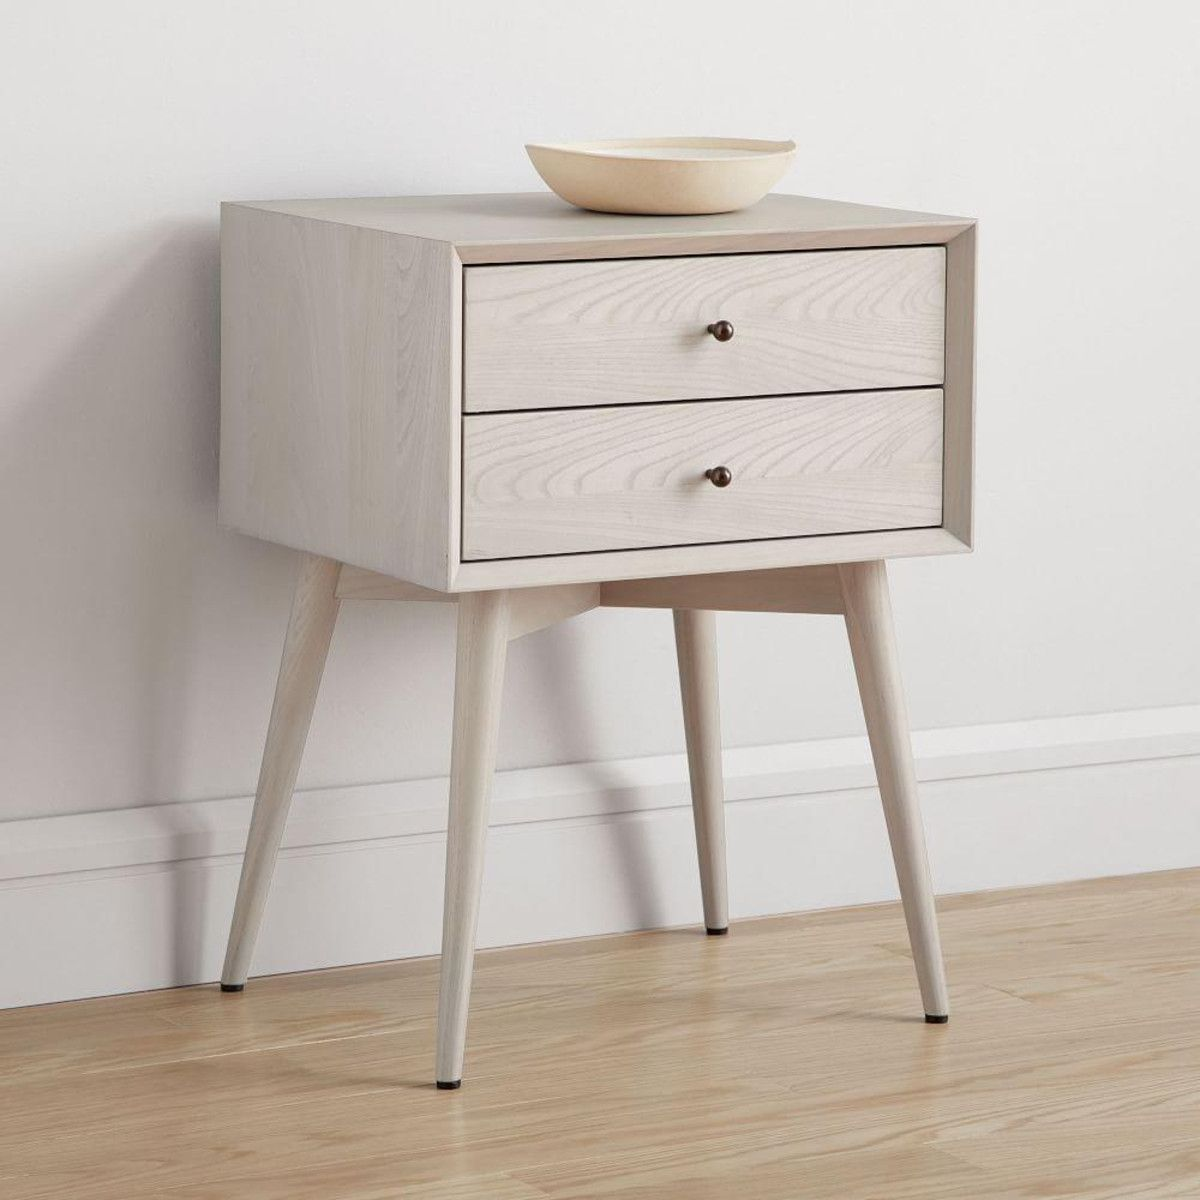 Mid Century Bedside Table Pebble In 2019 West Elm Mid Century Mid Century Bed Nightstand